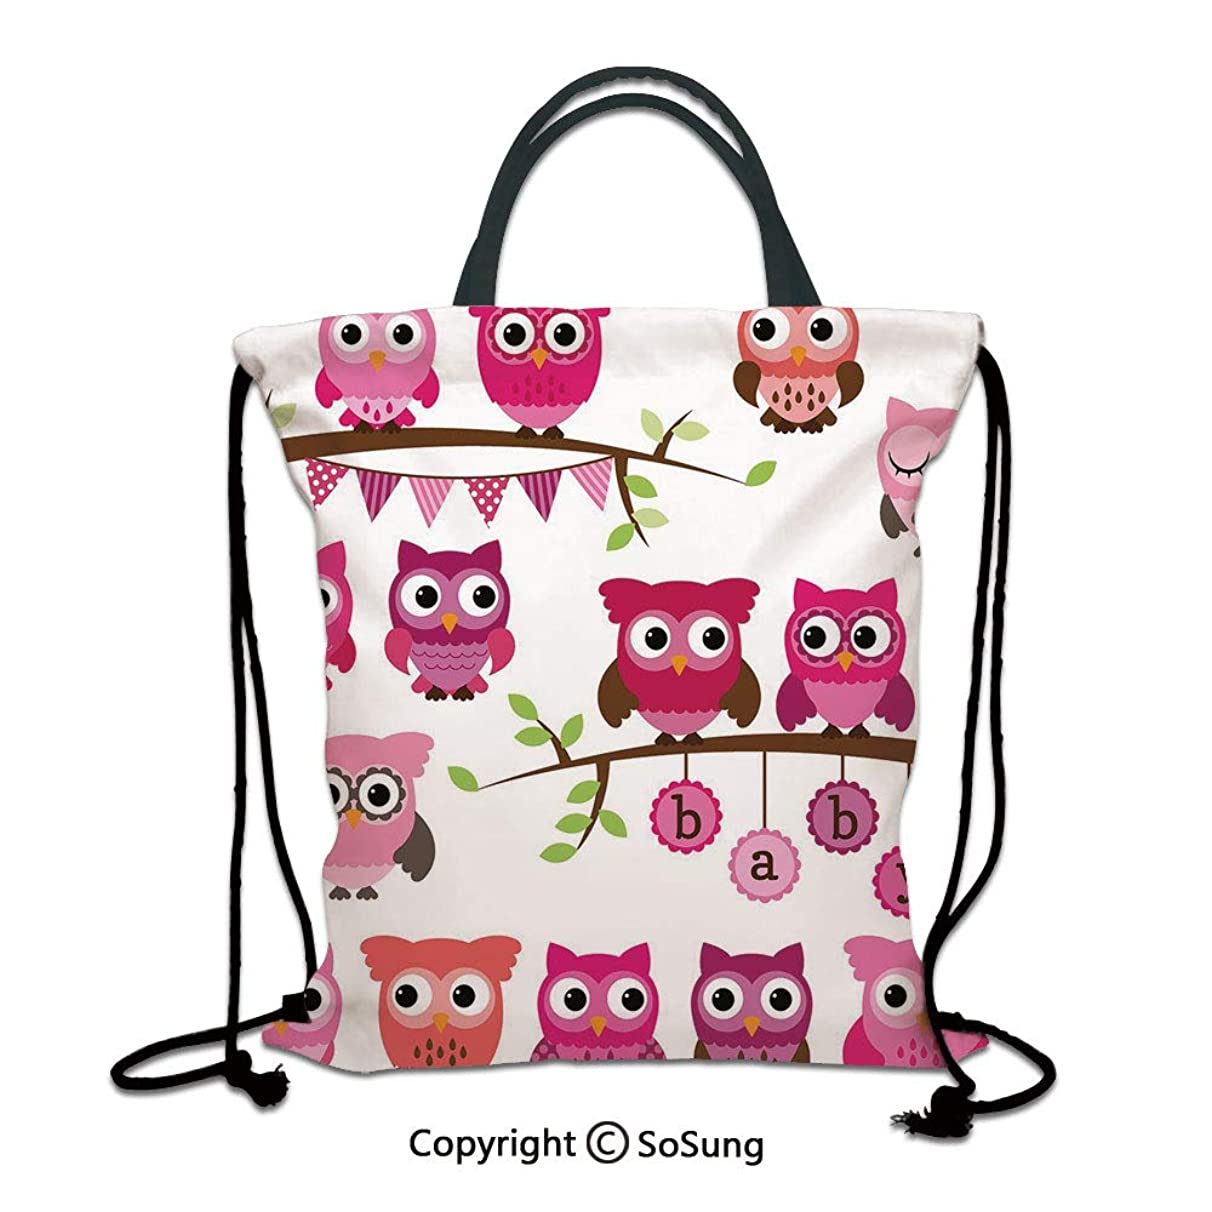 Nursery 3D Print Drawstring Bag String Backpack,Girl Baby Shower Themed Owls and Branches Adorable Cartoon Animal Characters,for Travel Gym School Beach Shopping,Purple Pink Brown